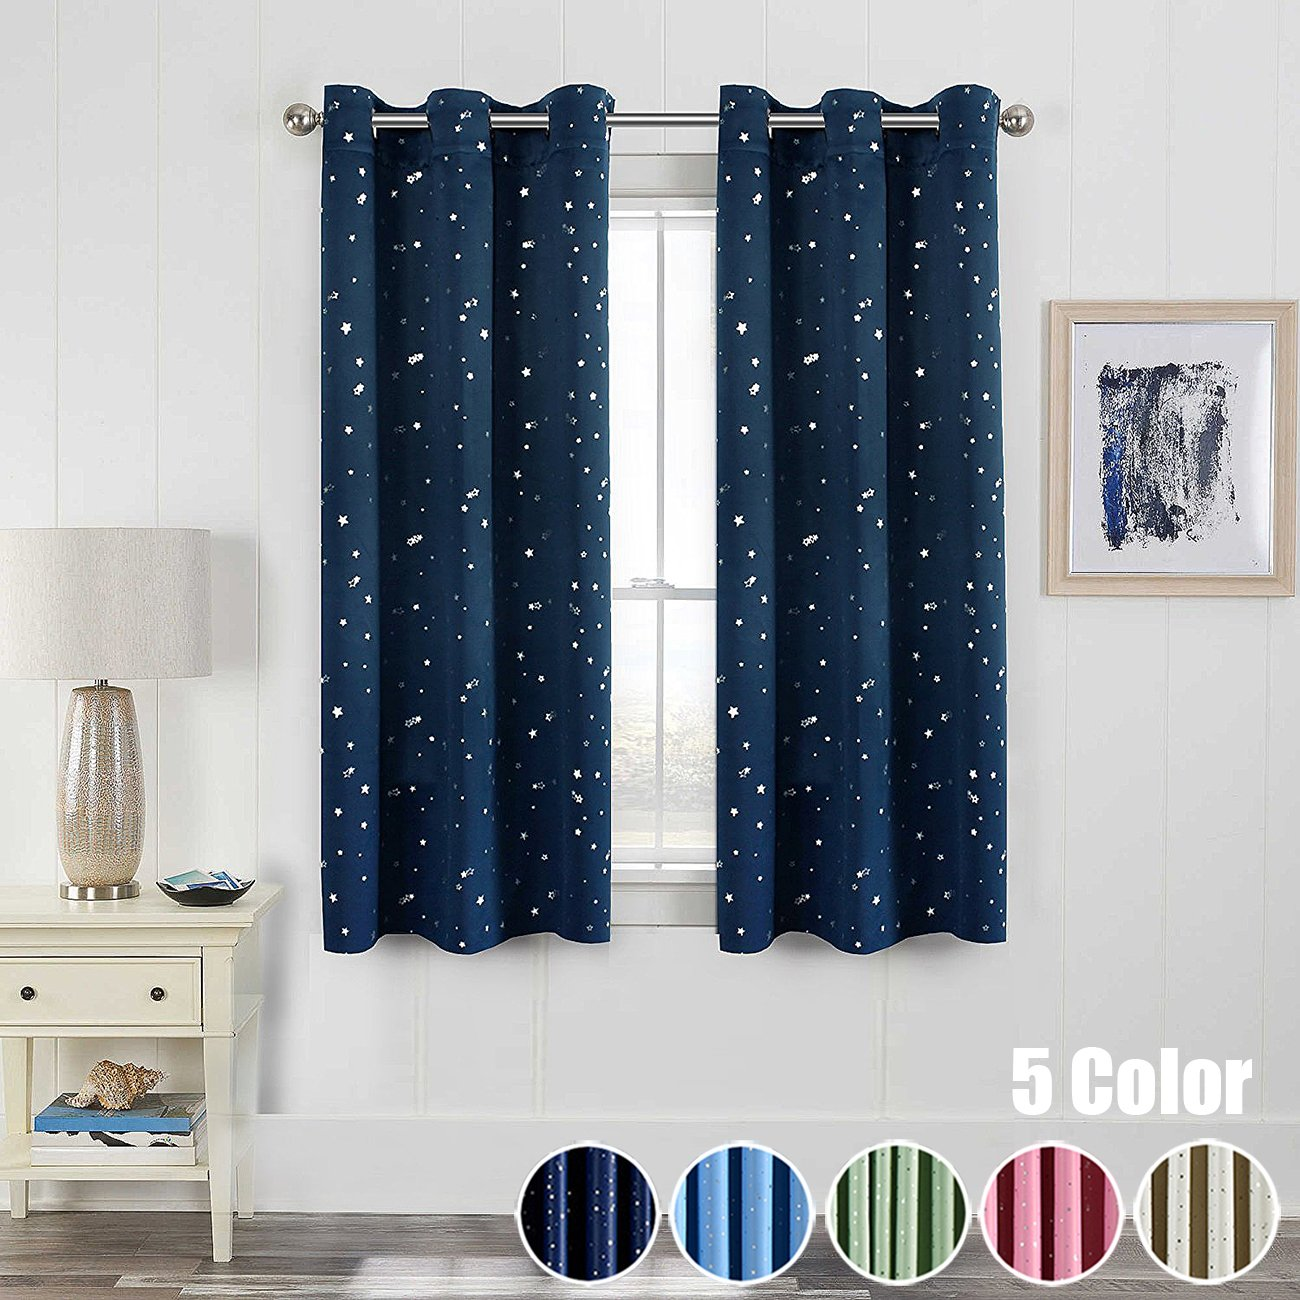 WPKIRA Window Treatments Short Curtains Grommet Room Darkening Stars Print  Blackout Window Curtains Panels Drapes For Bay Window/Kid\'s Bed 1 Panel W37  ...